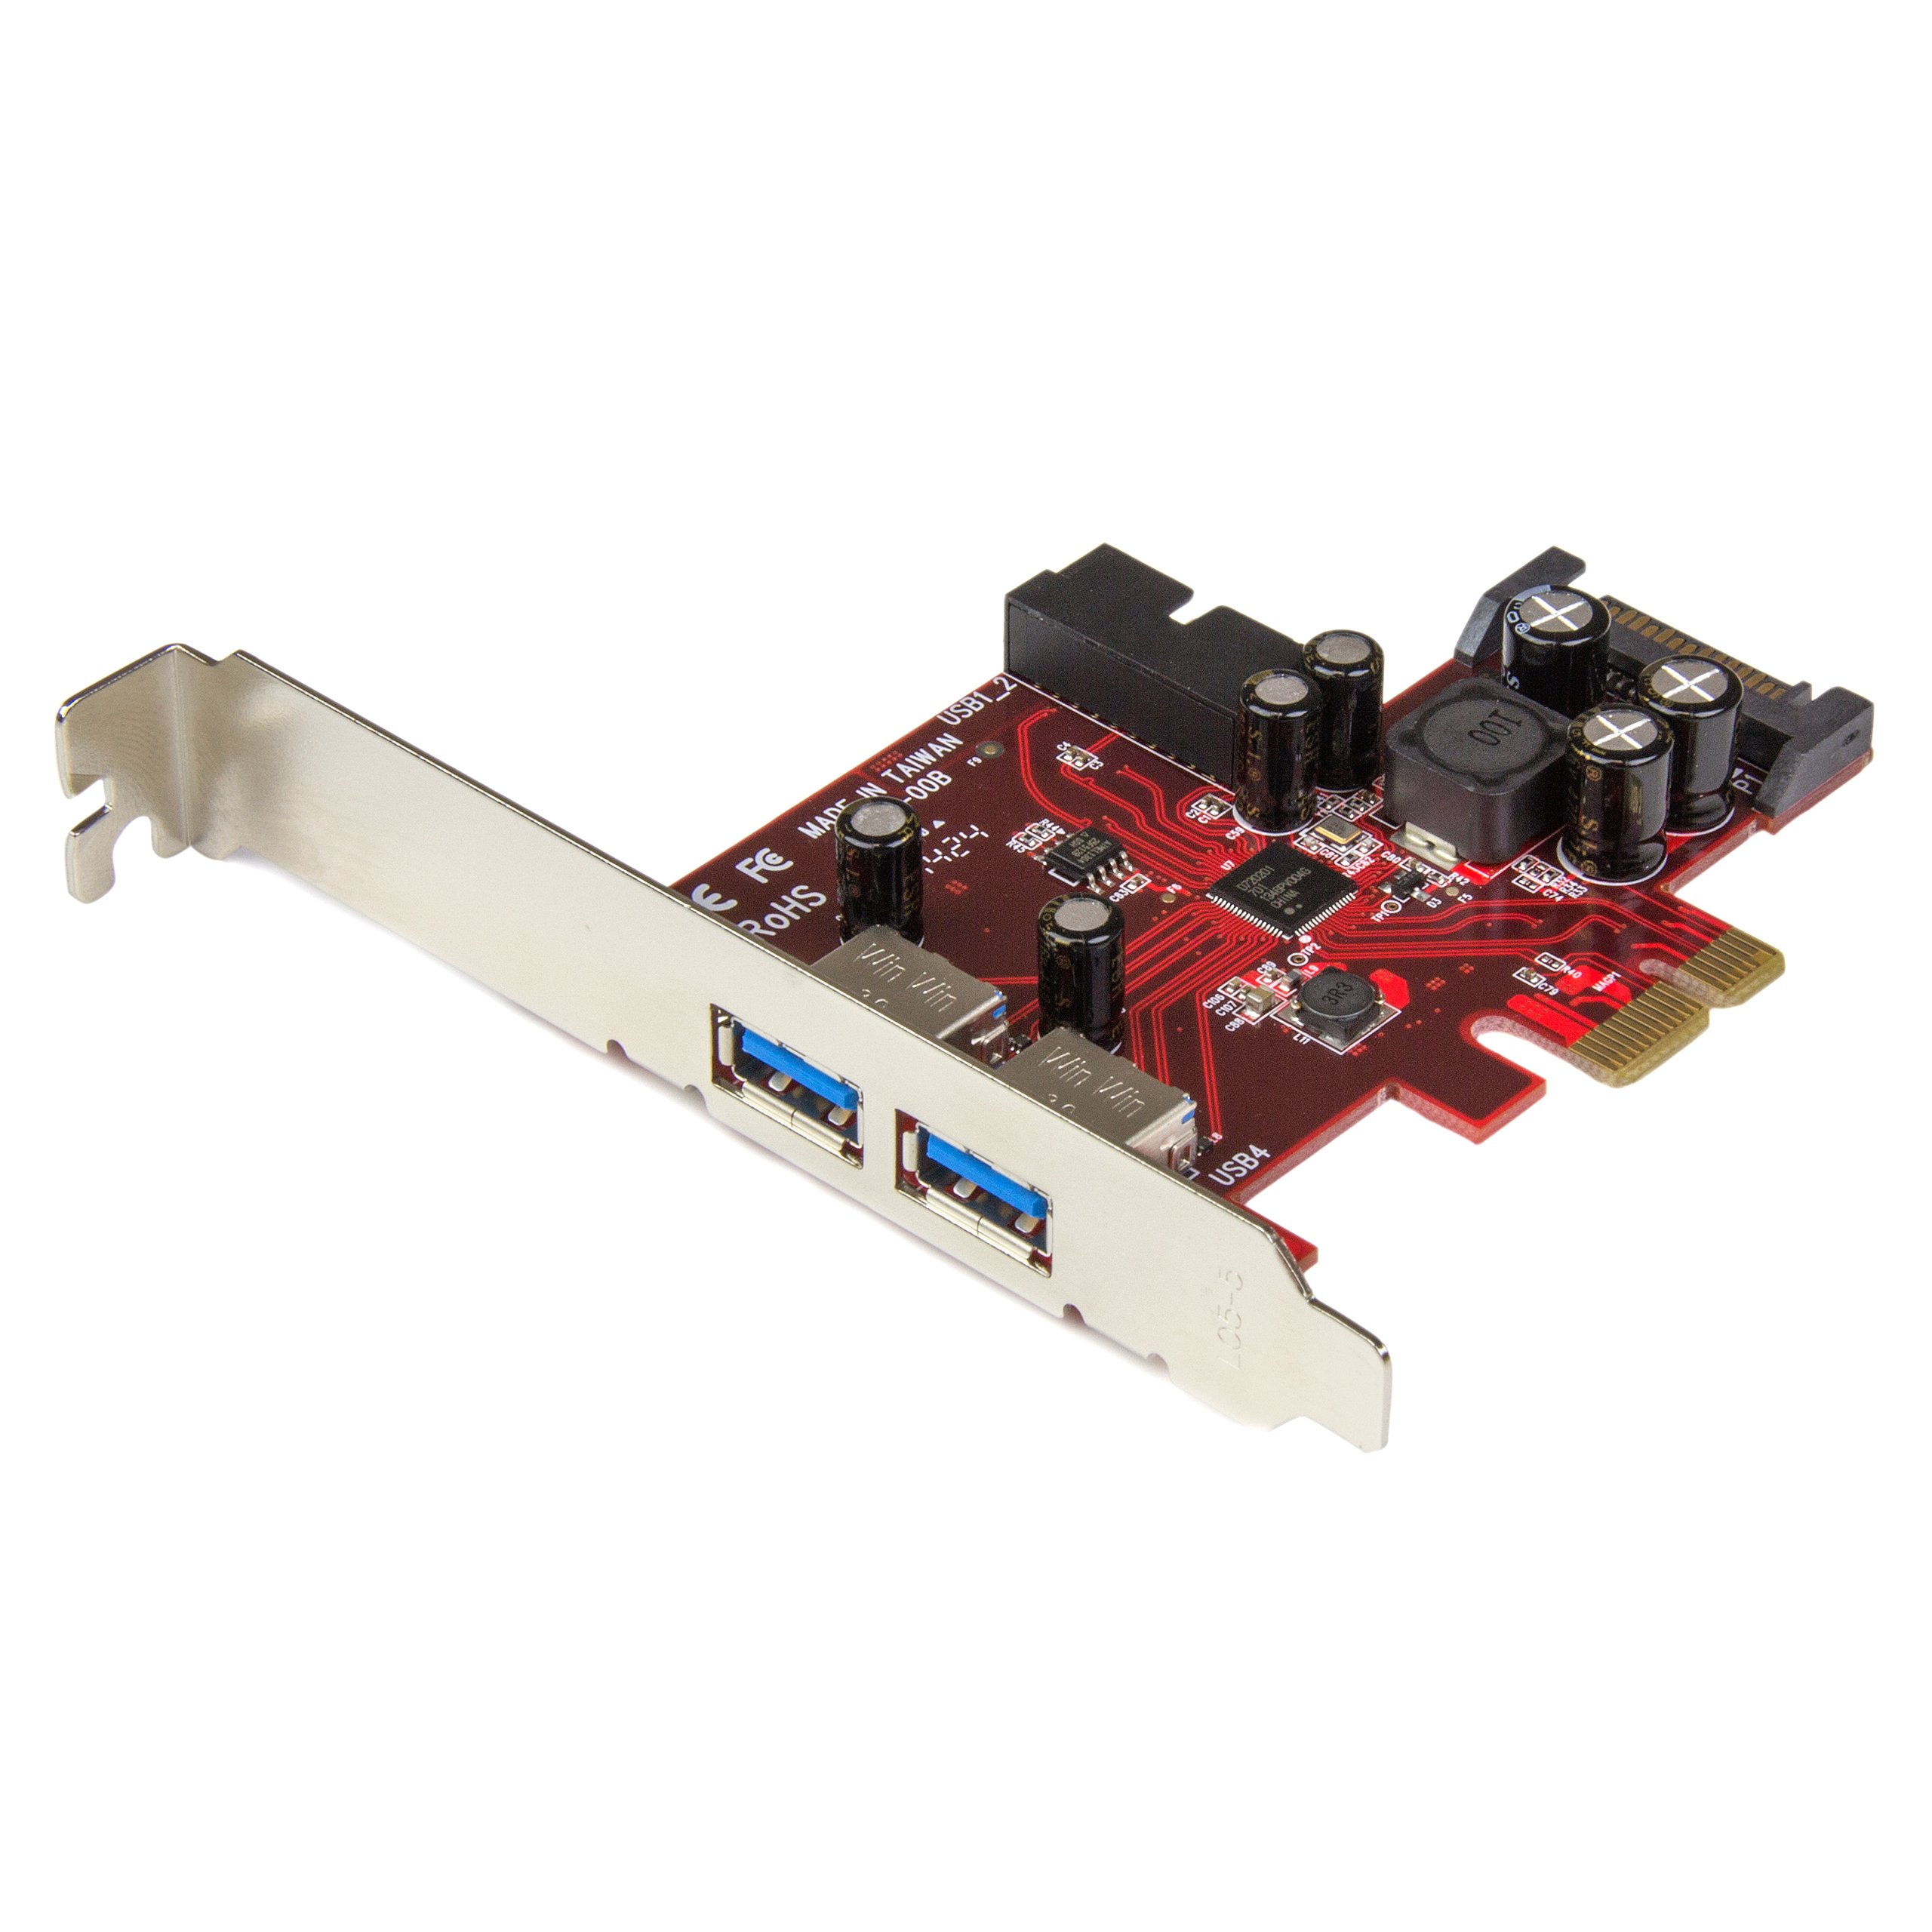 StarTech.com 4 Port PCI Express USB 3.0 Card - 2 External & 2 Internal - SATA Power - UASP Support - 2x Int Motherboard-Style Headers (PEXUSB3S2EI) by StarTech